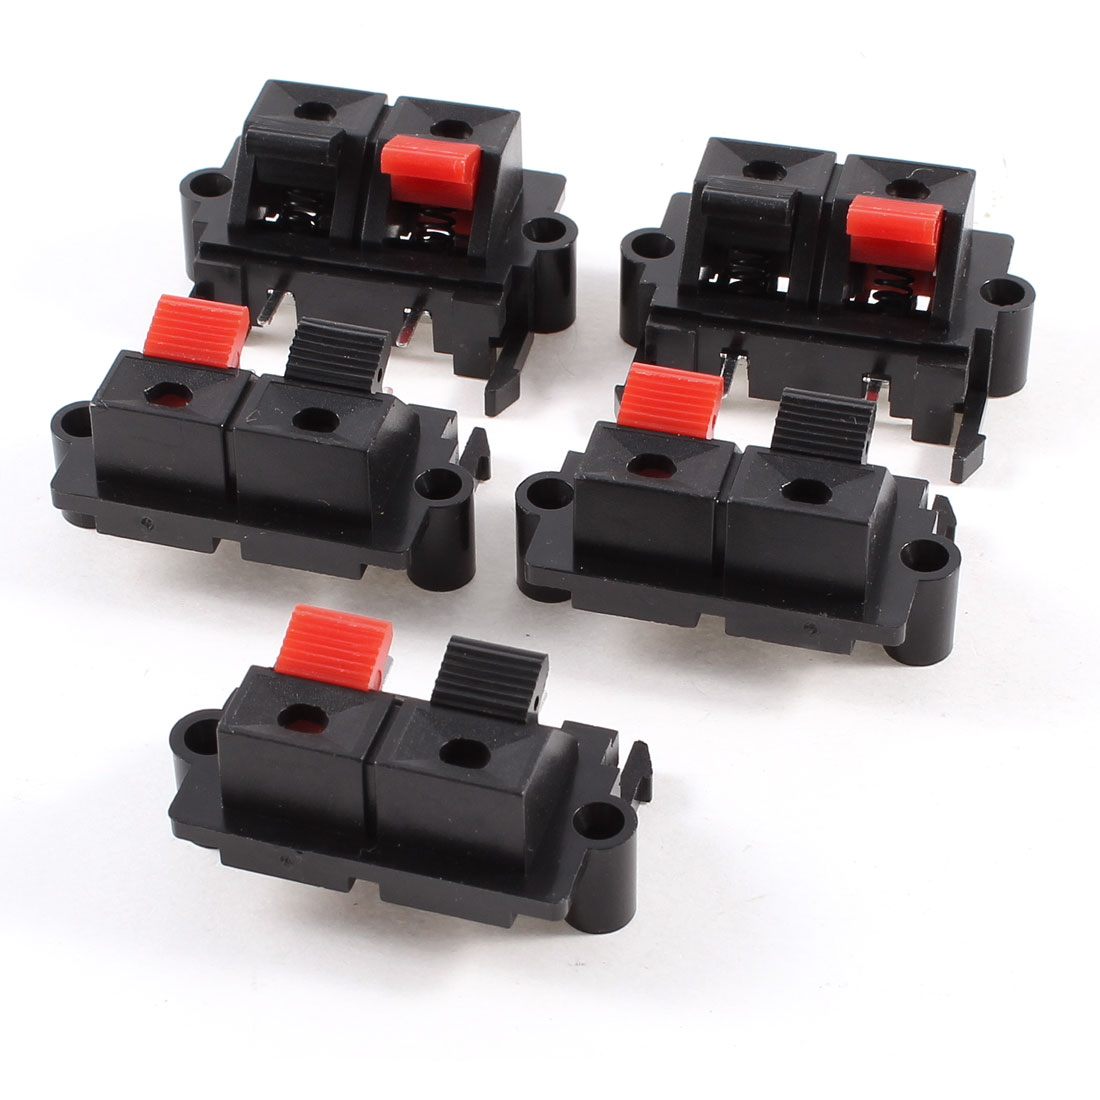 5 Pcs 38mm x 20mm 2 Positions Push in Jack Spring Load Audio Speaker Terminals